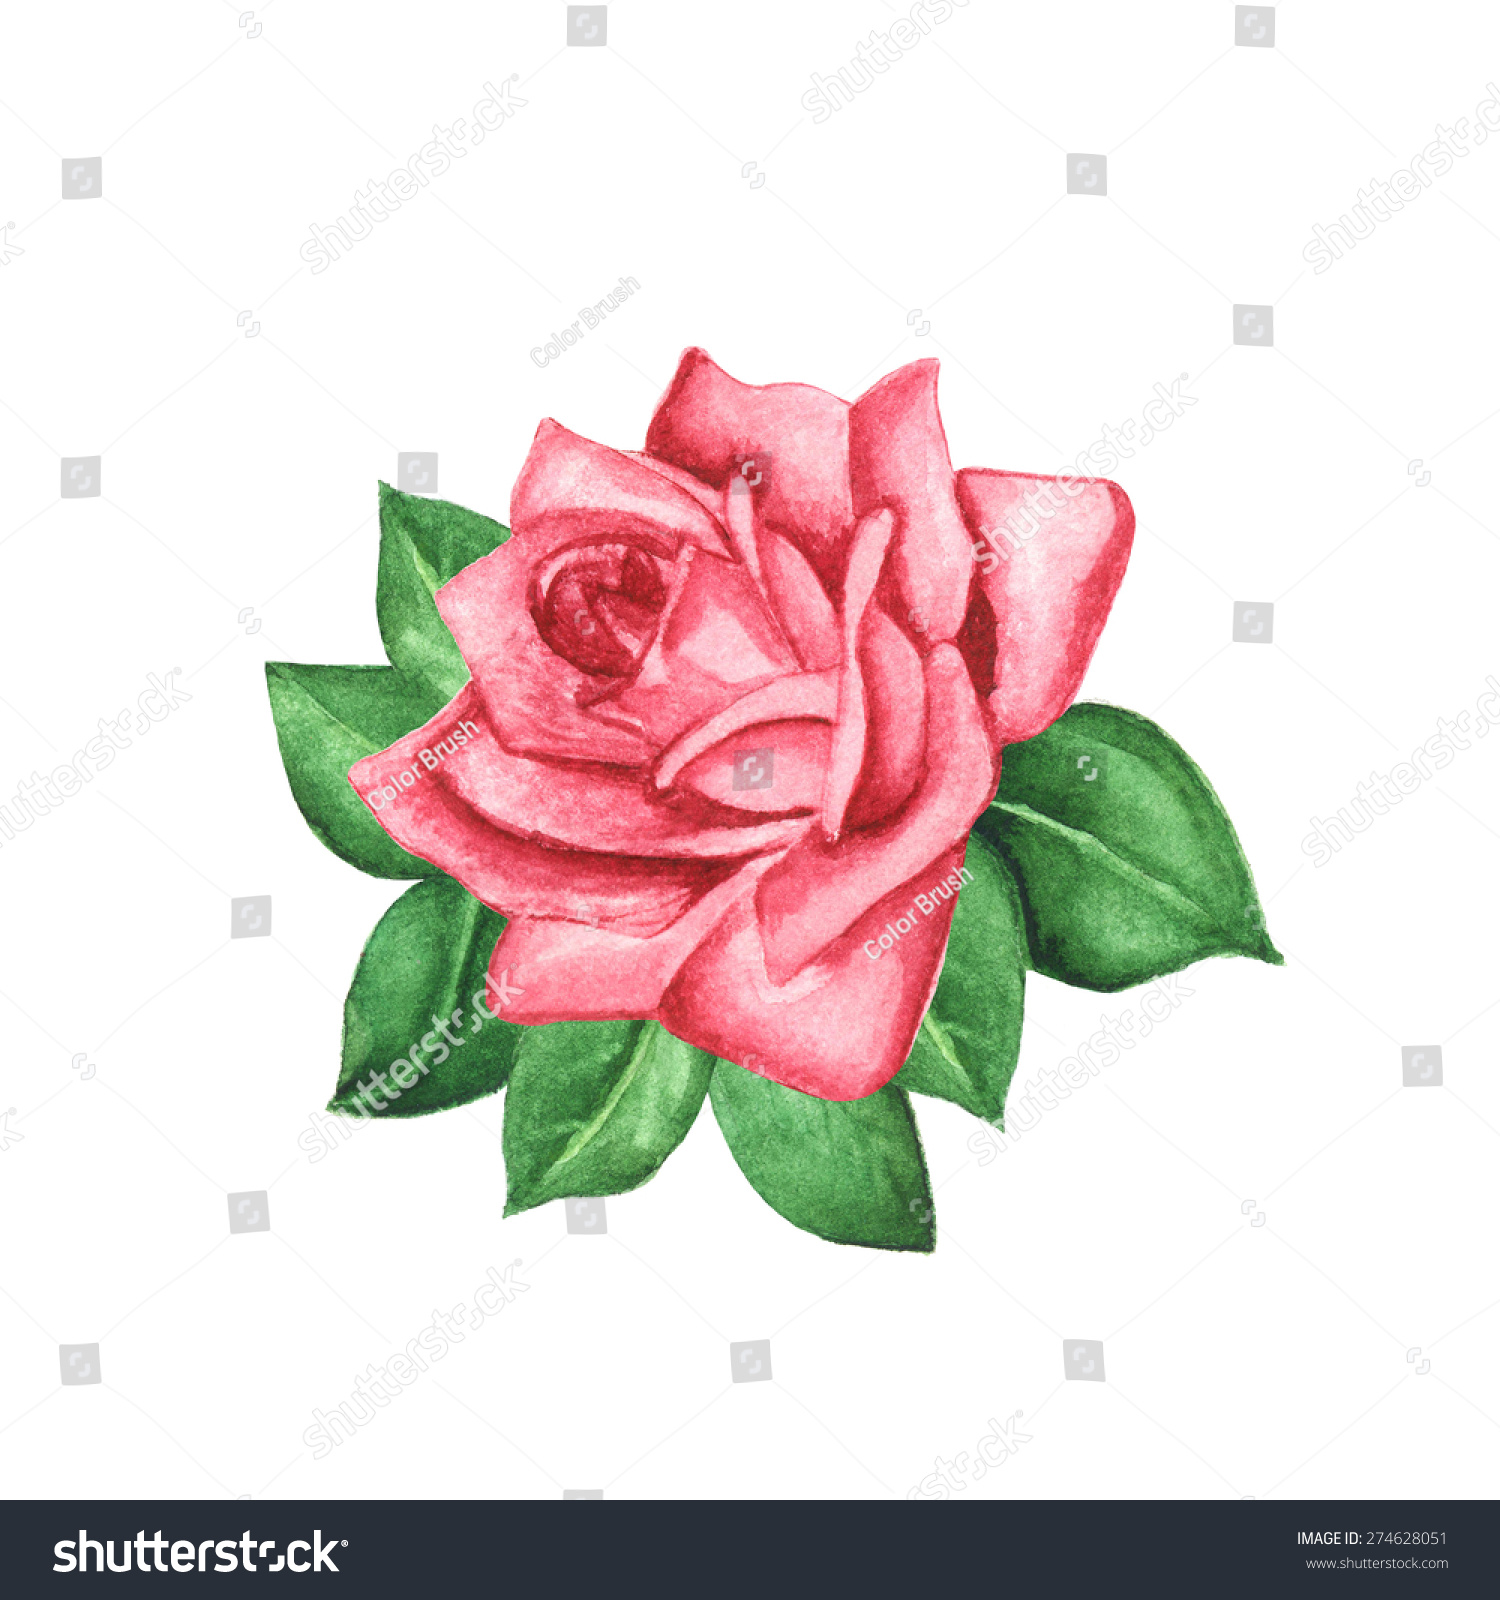 Watercolor pink rose flower with green leaves closeup isolated on ...